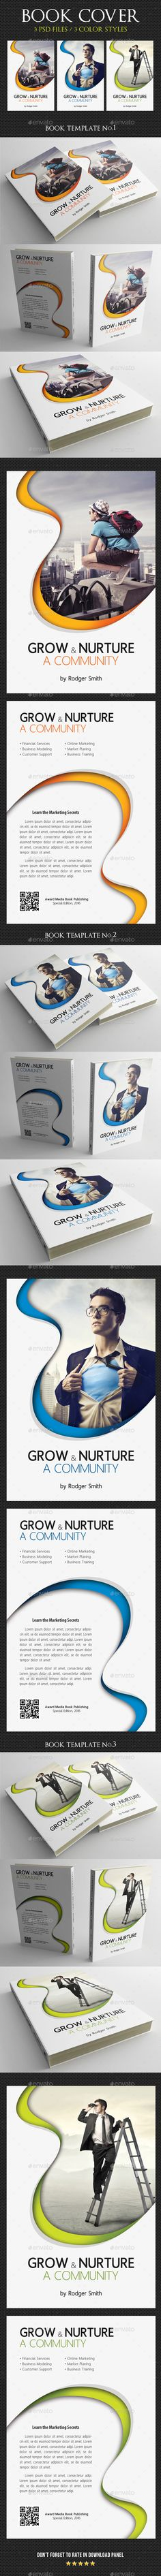 87 Best Book Cover Templates Images On Pinterest In 2018 Book